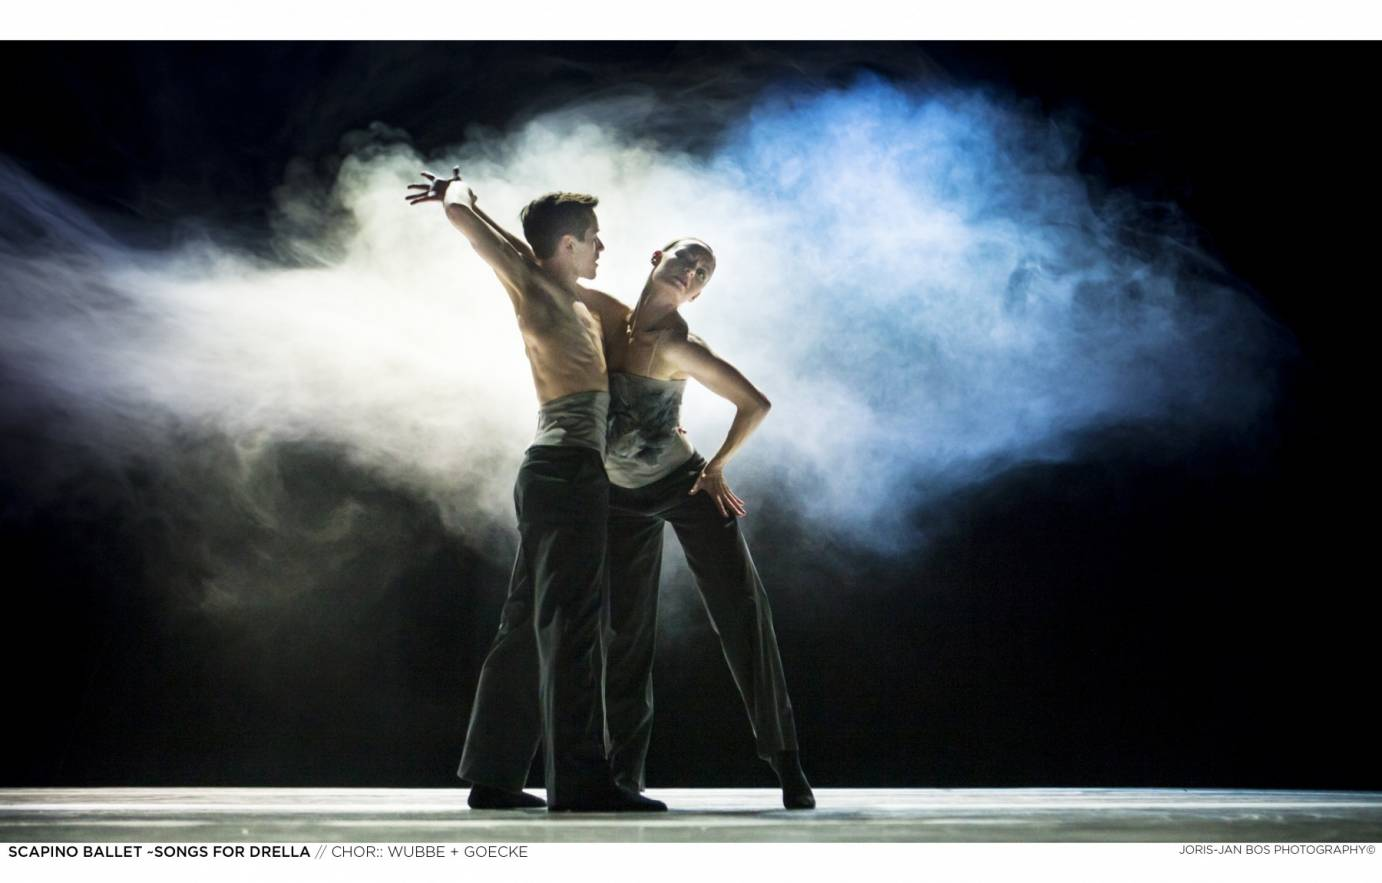 Two Scapino Ballet Rotterdam Dancers performing in midst of a cloud of fog